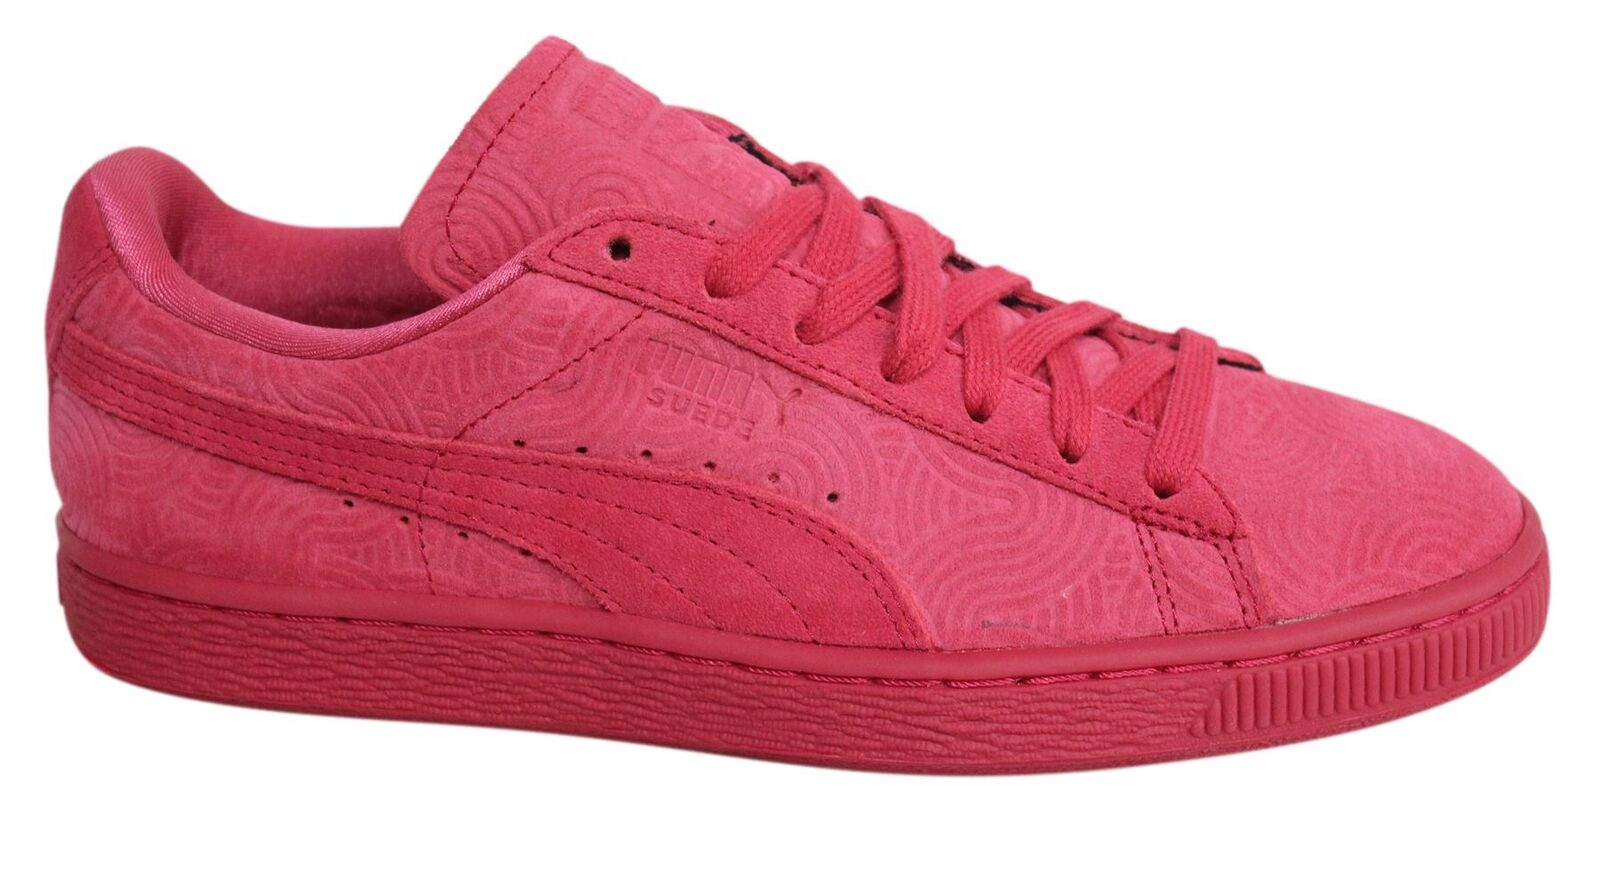 Puma Suede Classic + Lace Up Rose Leather D119 Womens Trainers 360584 02 D119 Leather 538836